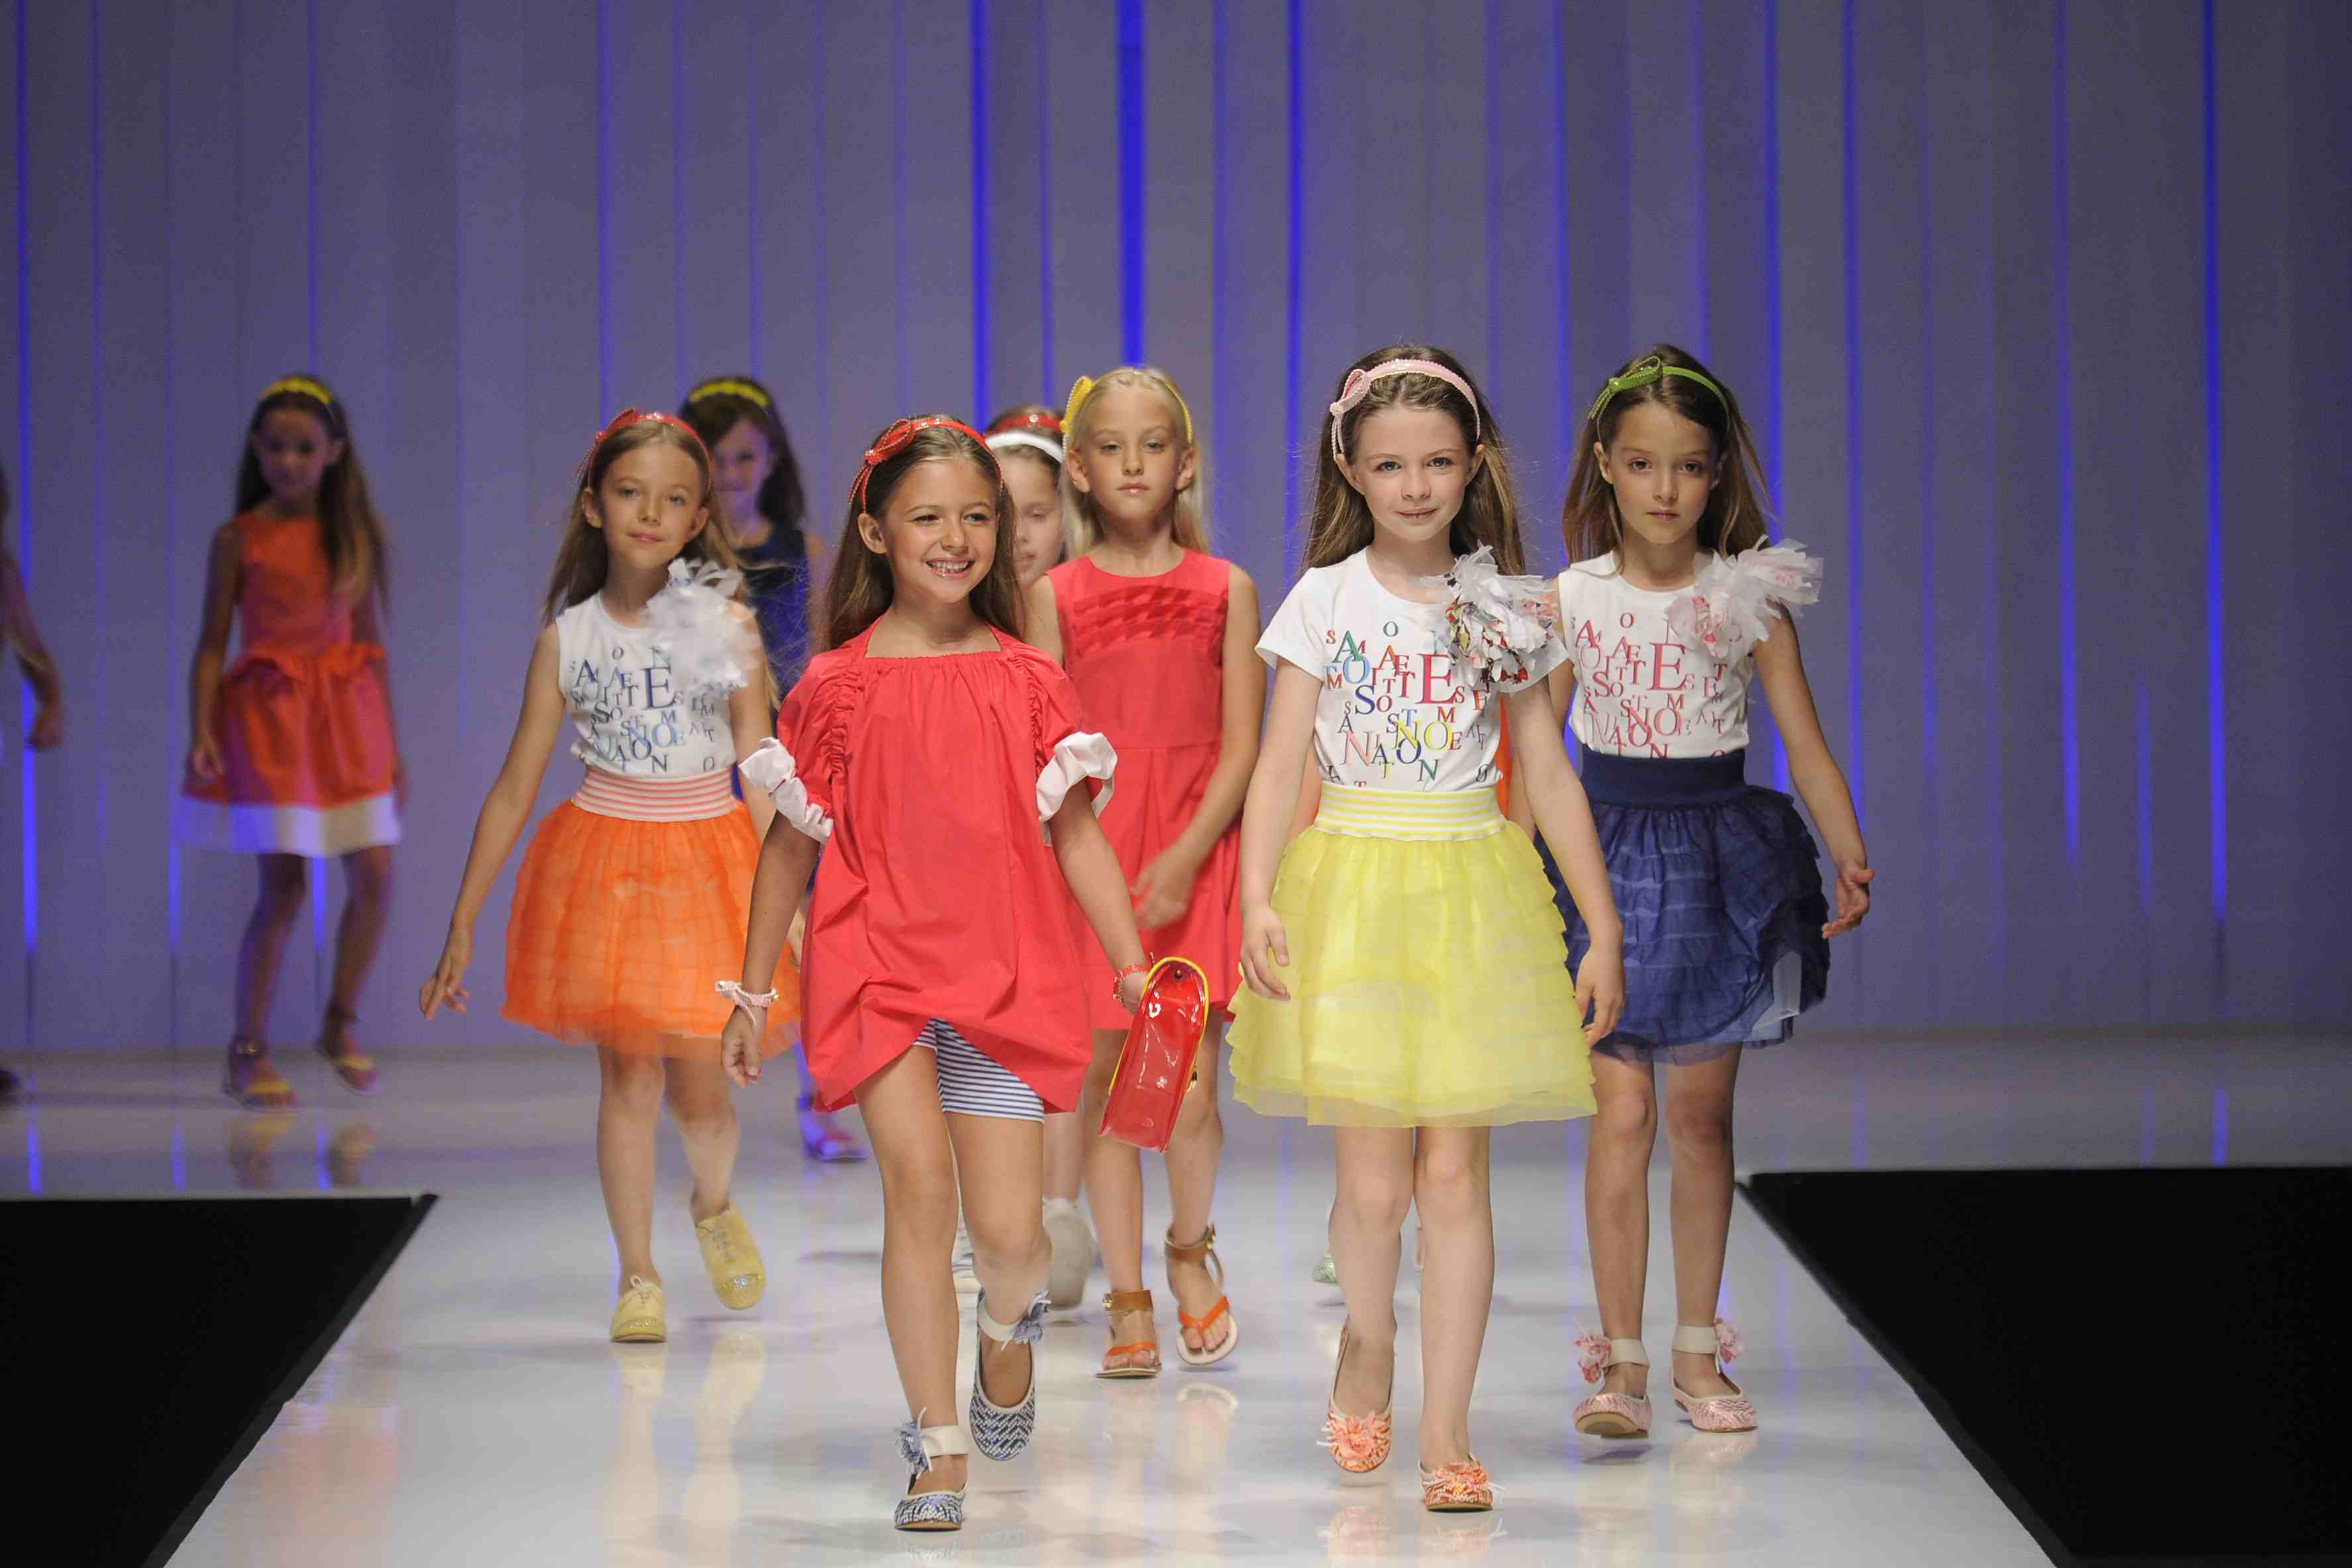 Super vibrant colour at Simonetta for summer 2012 girlswear